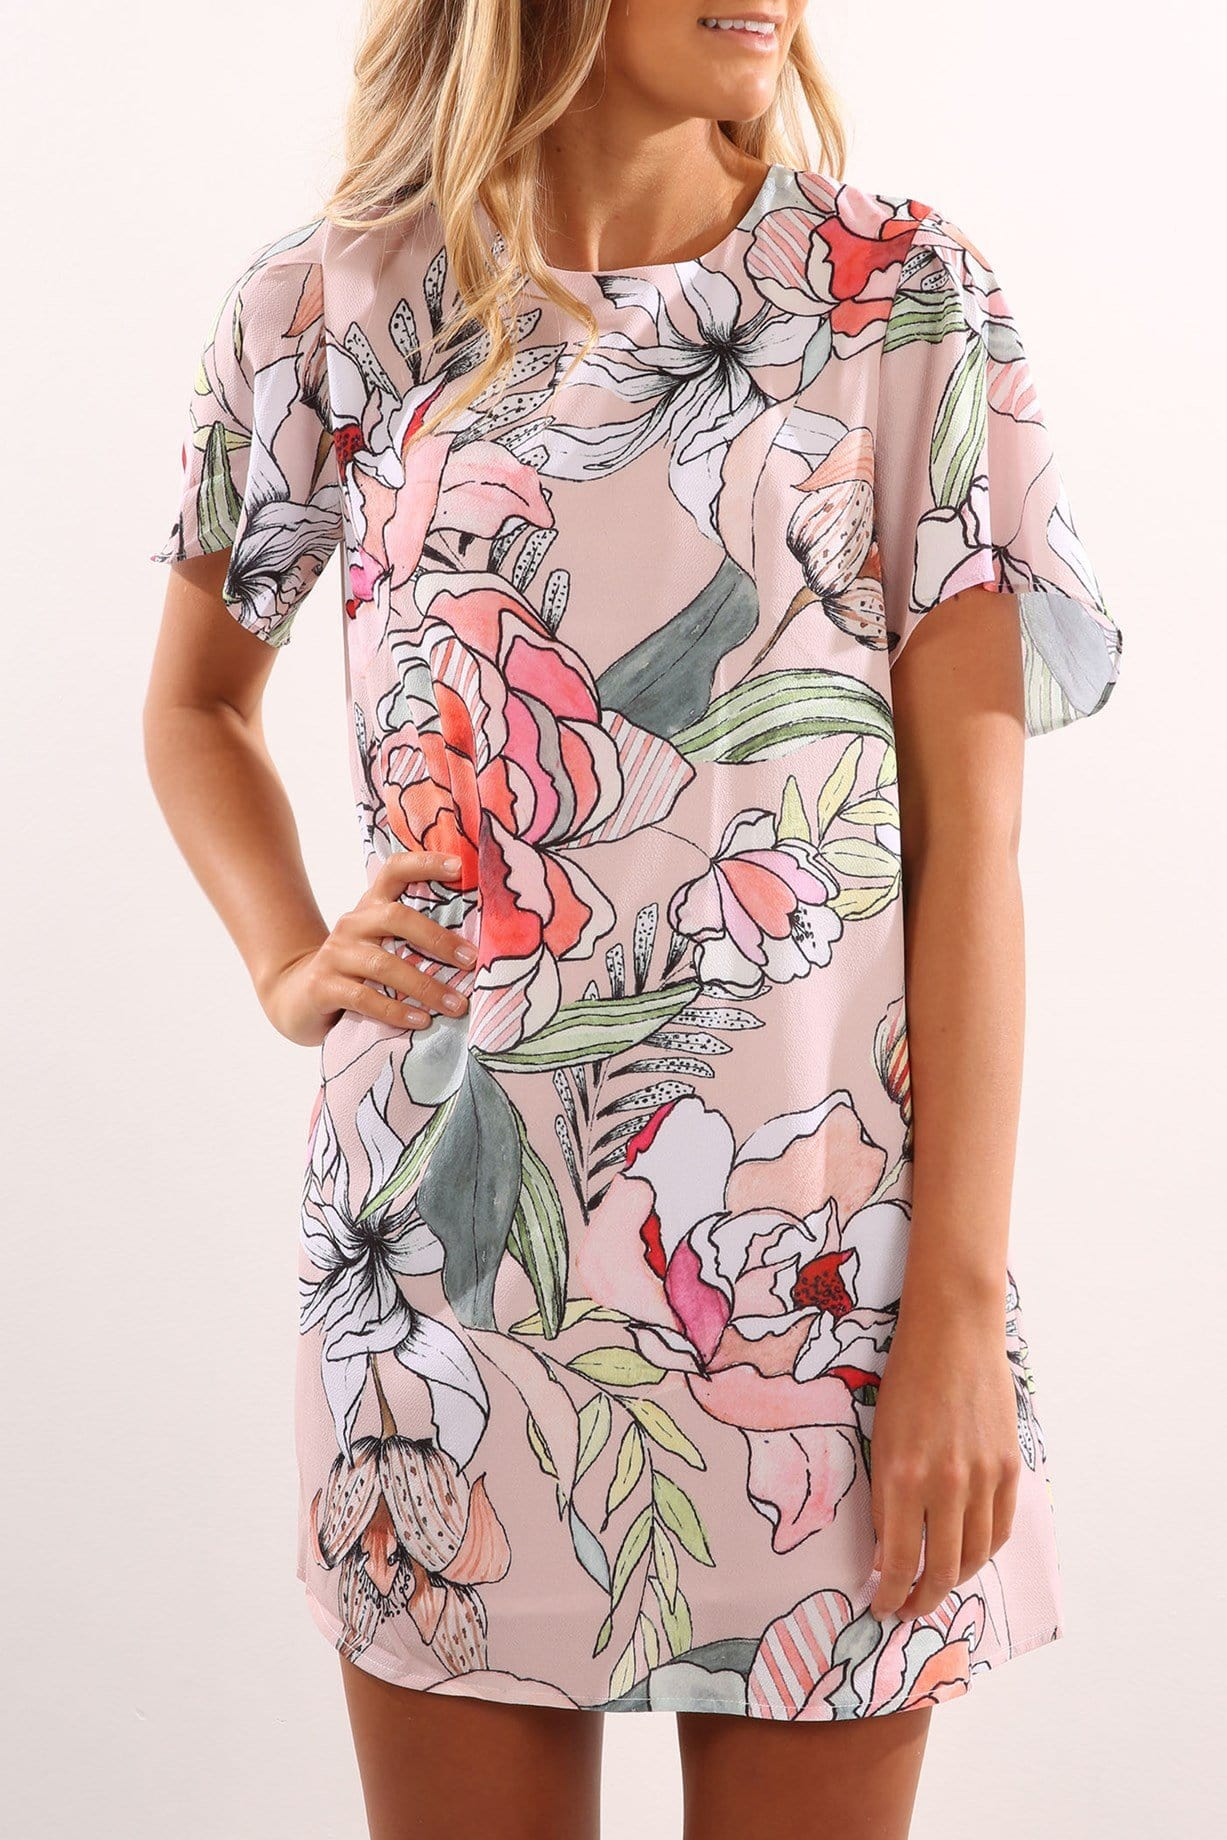 In Bloom Dress Peach Floral